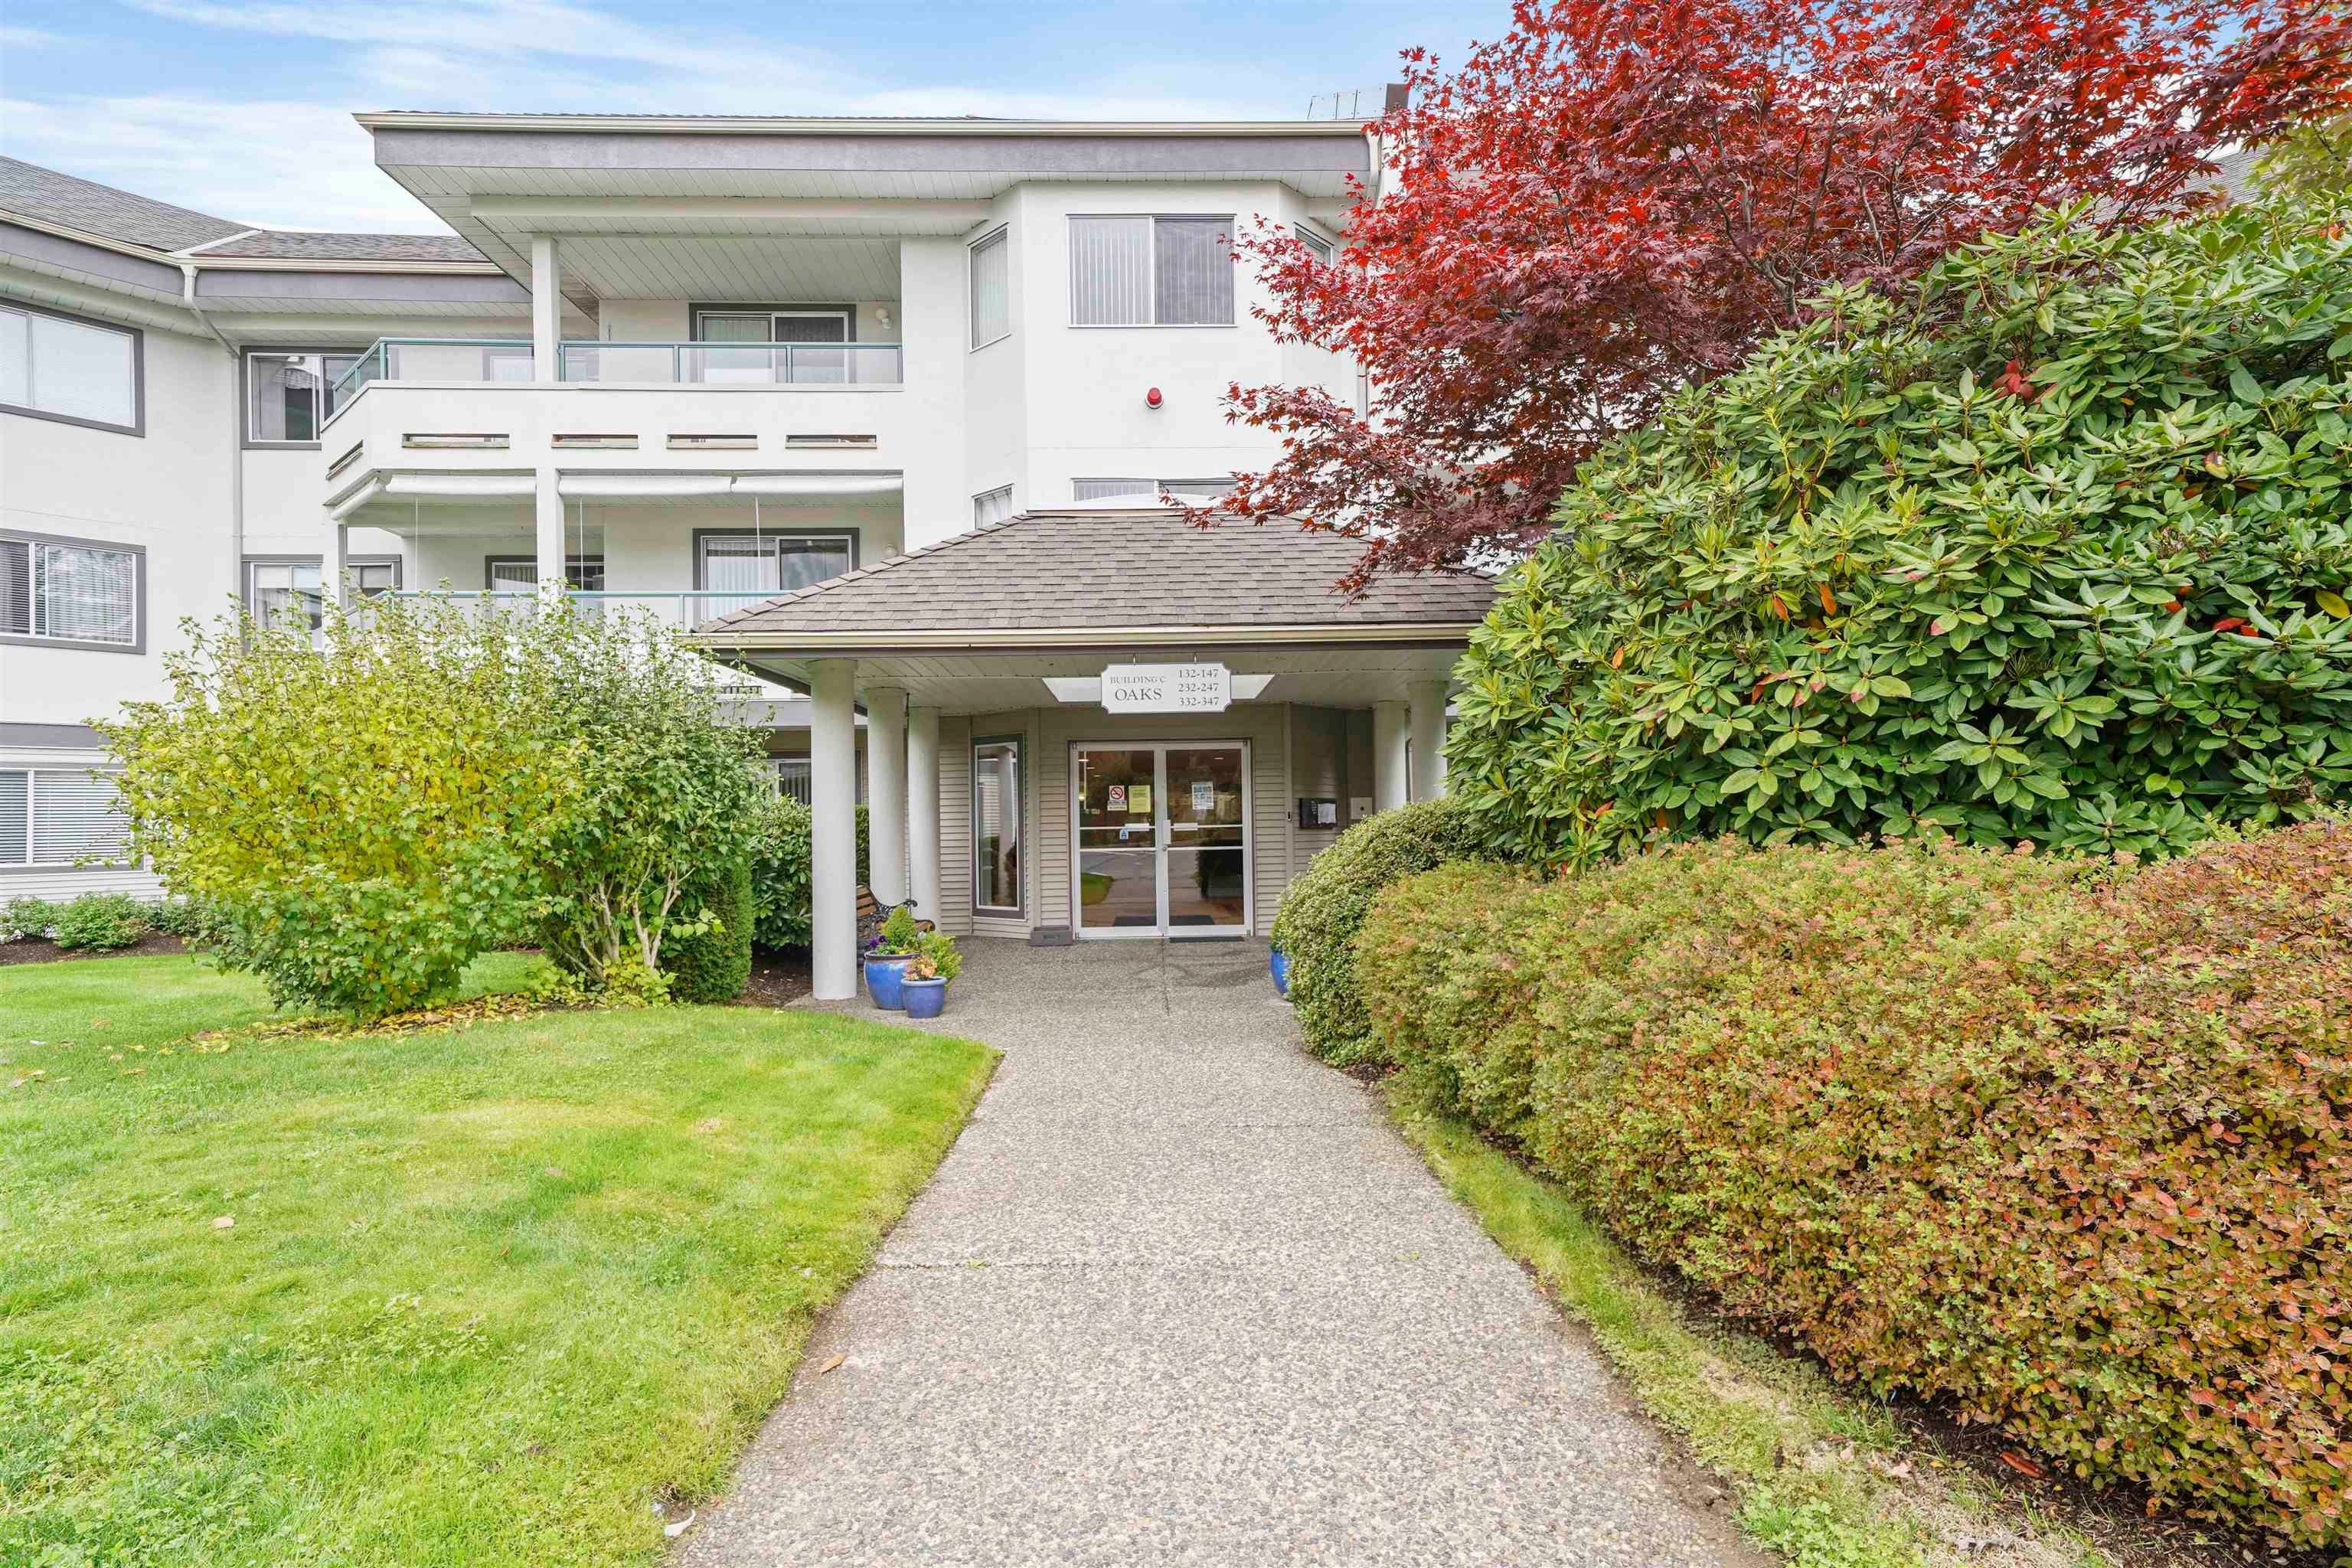 337 2451 GLADWIN ROAD - Abbotsford West Apartment/Condo for sale, 2 Bedrooms (R2627182) - #1